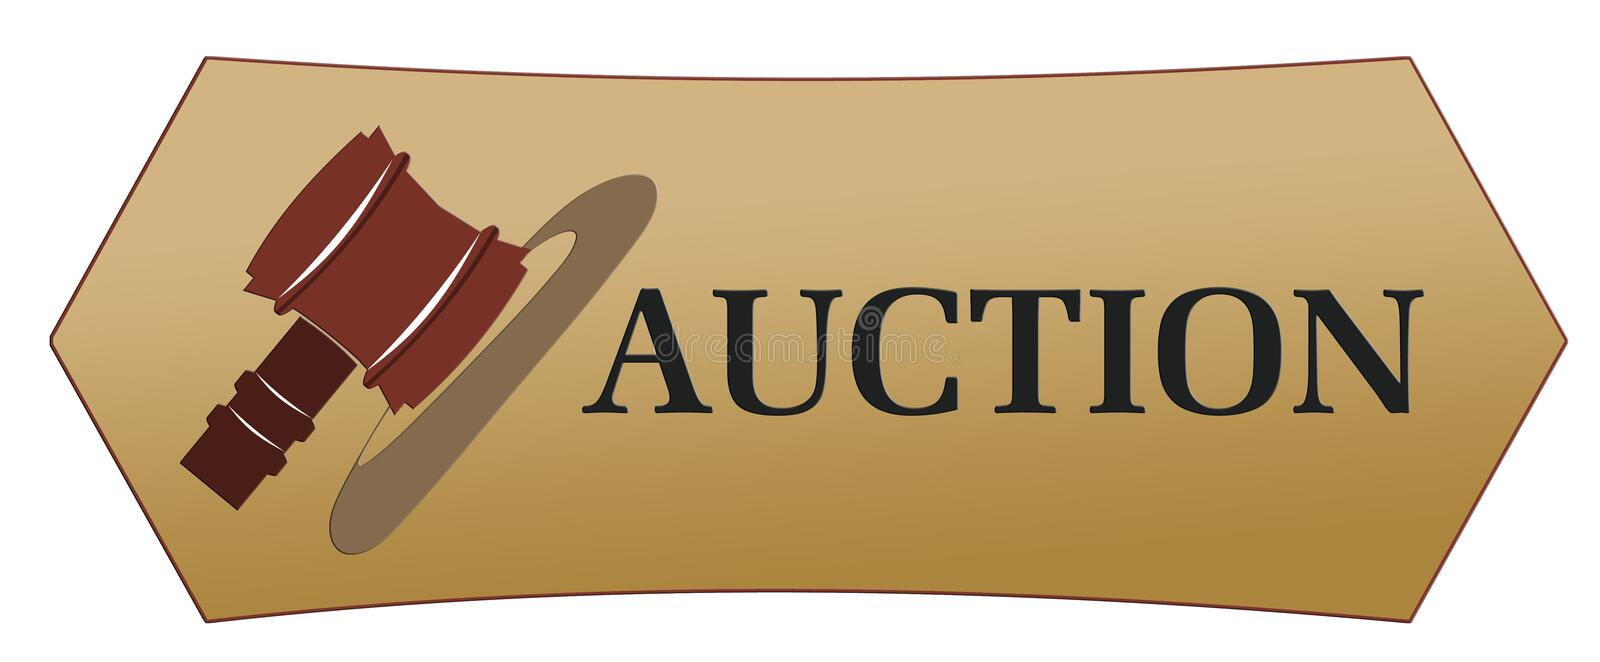 Auction icons stock photos